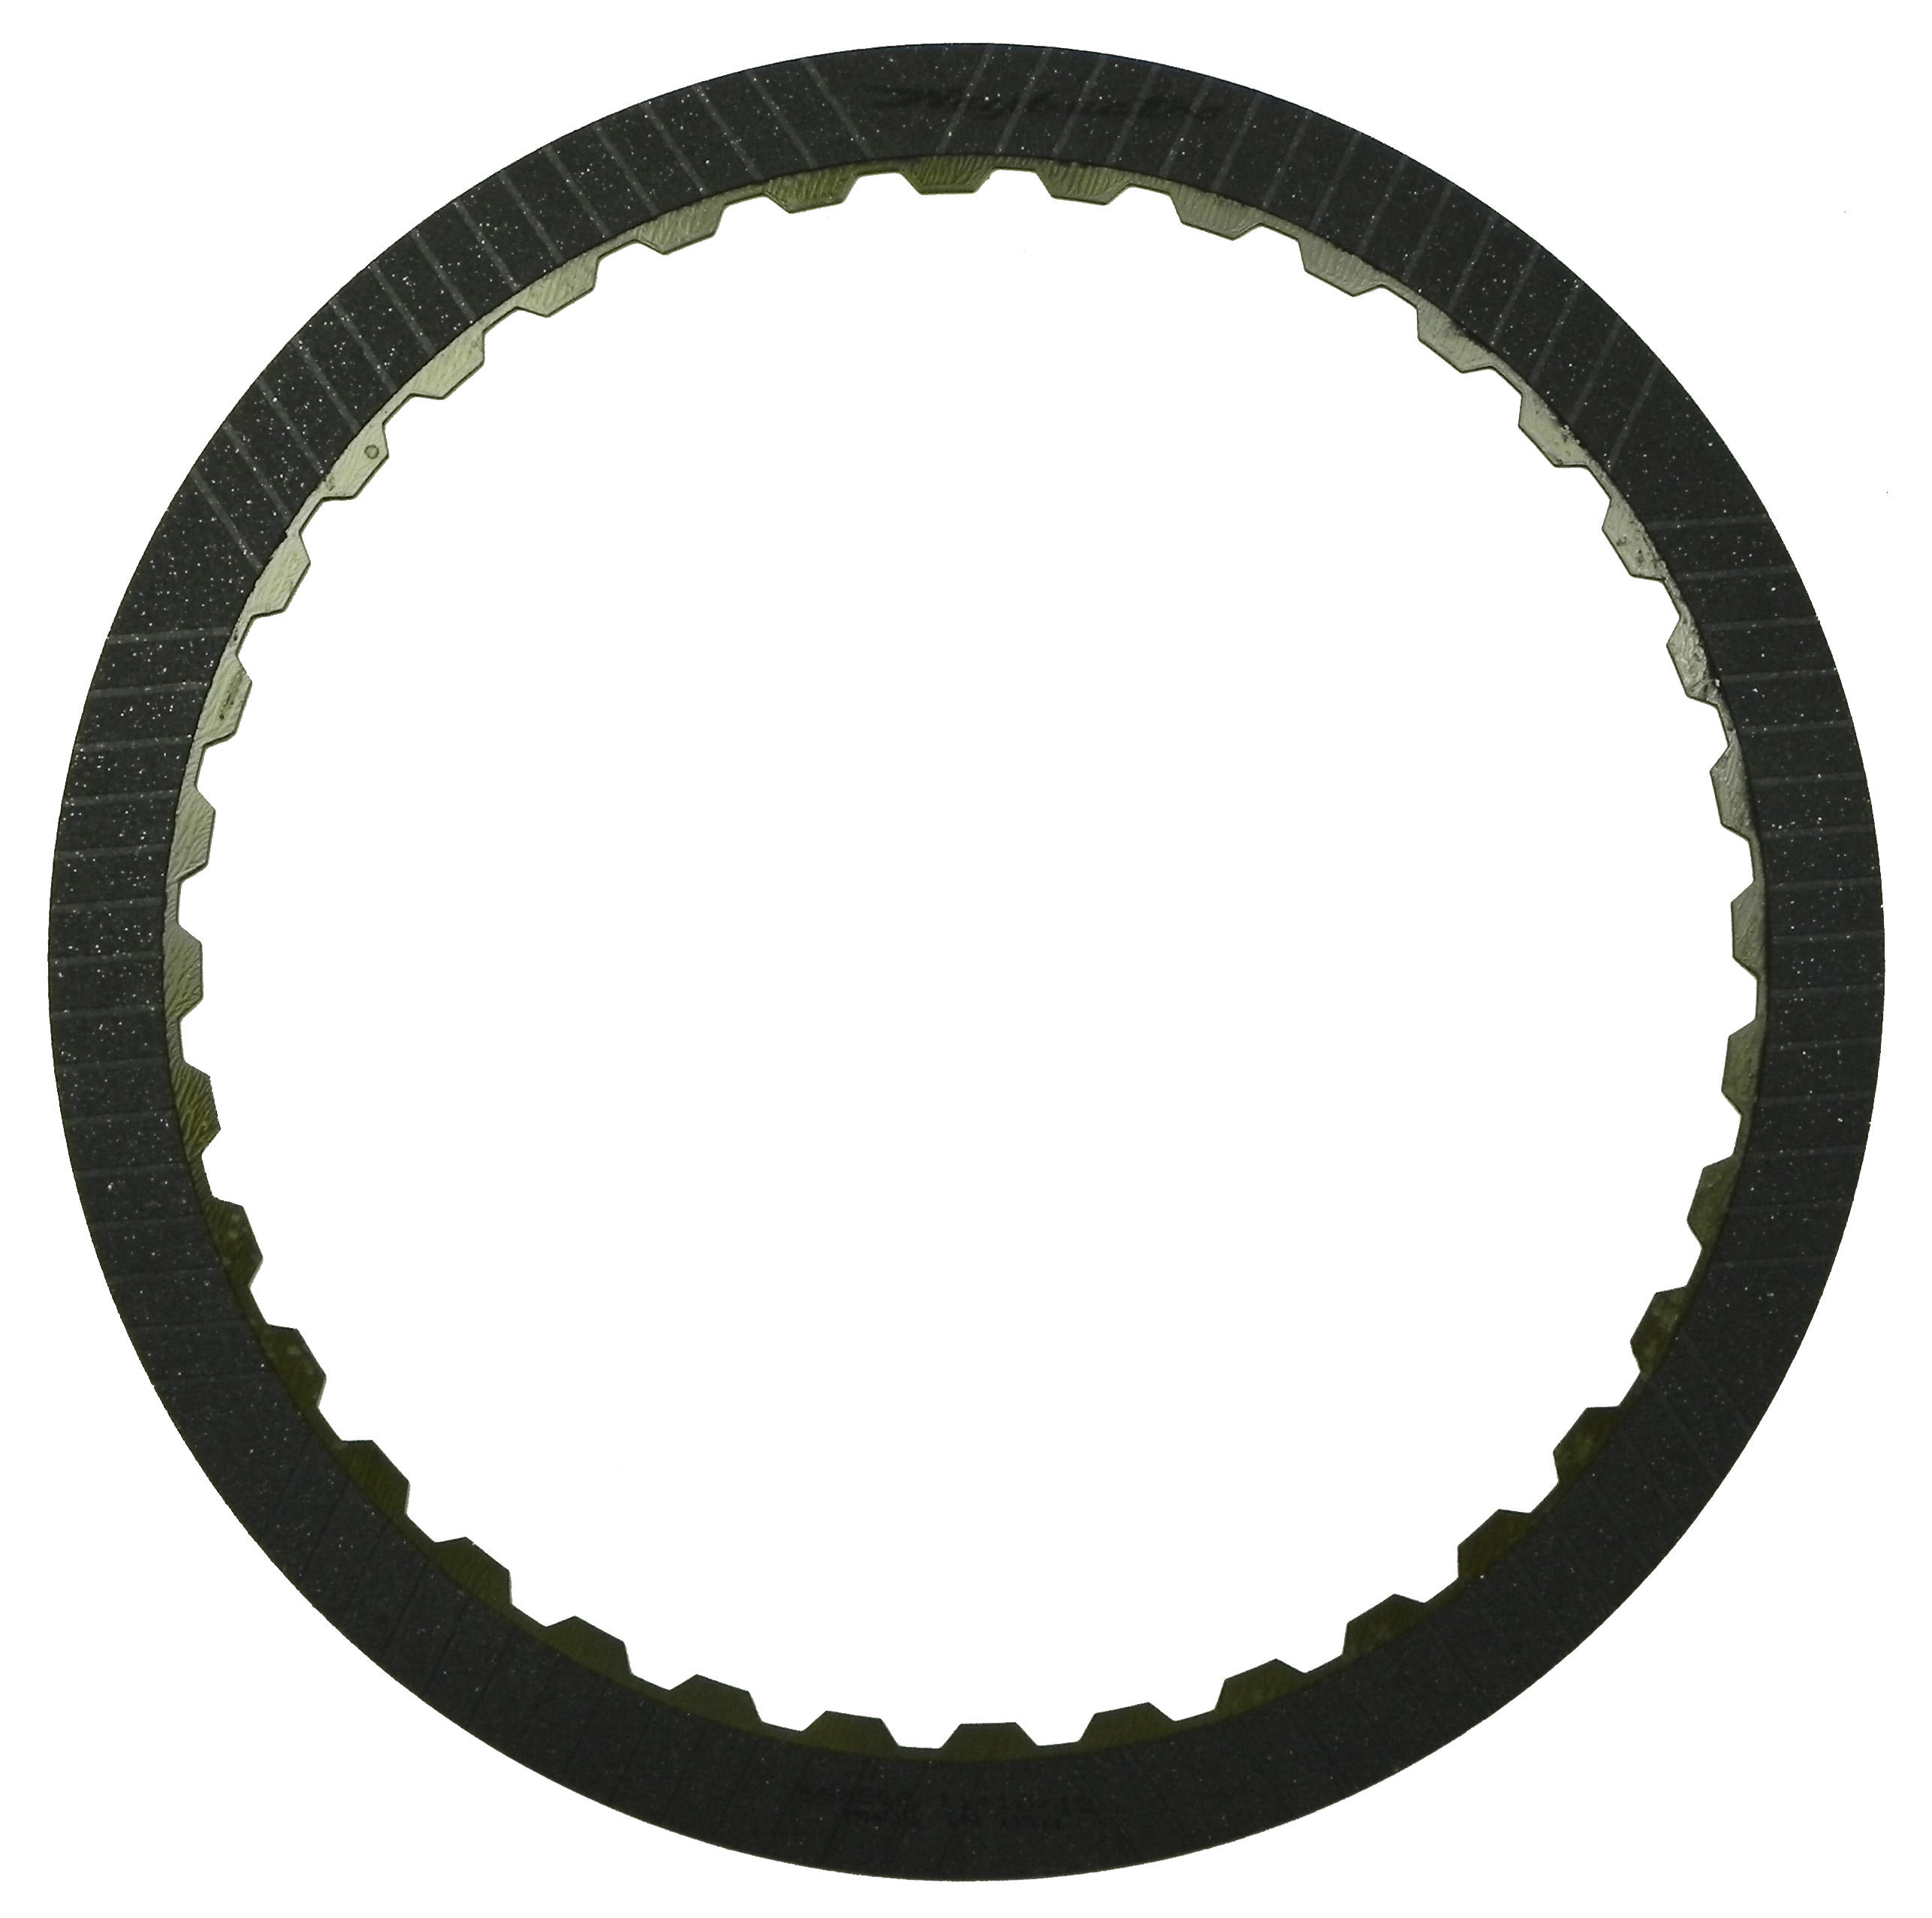 R558562 | 2009-ON Friction Clutch Plate OE Replacement 1, 2, 3, 4 Forward, 2, 6 Intermediate Clutch